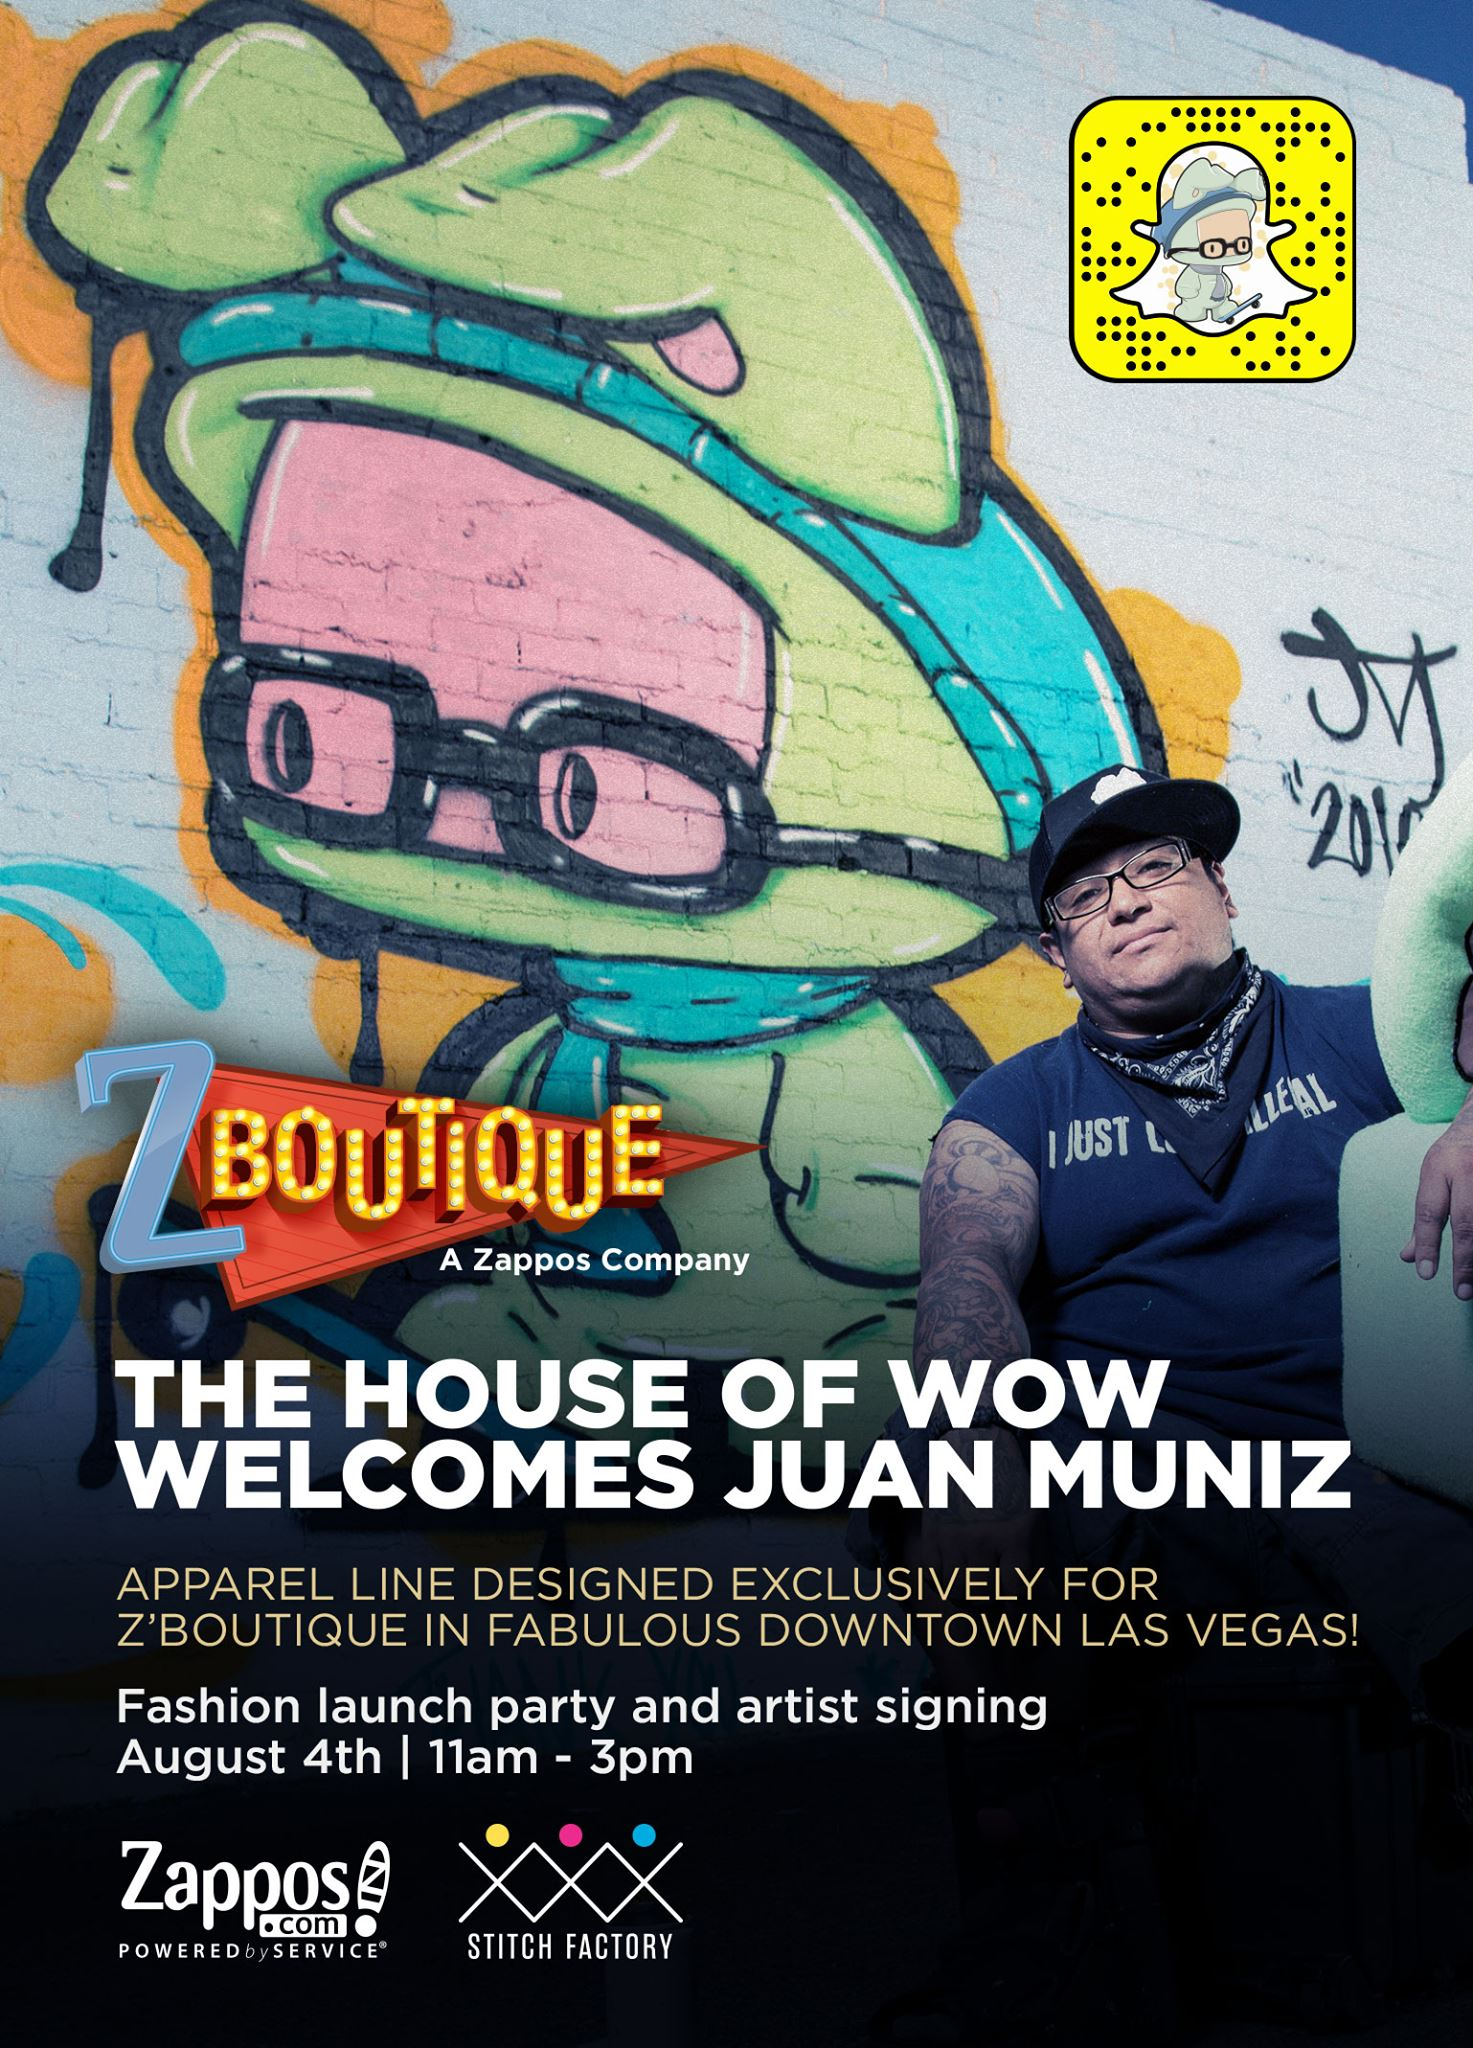 Walls360 custom wall graphics for Las Vegas artist Juan Muniz at Zappos Z'Boutique